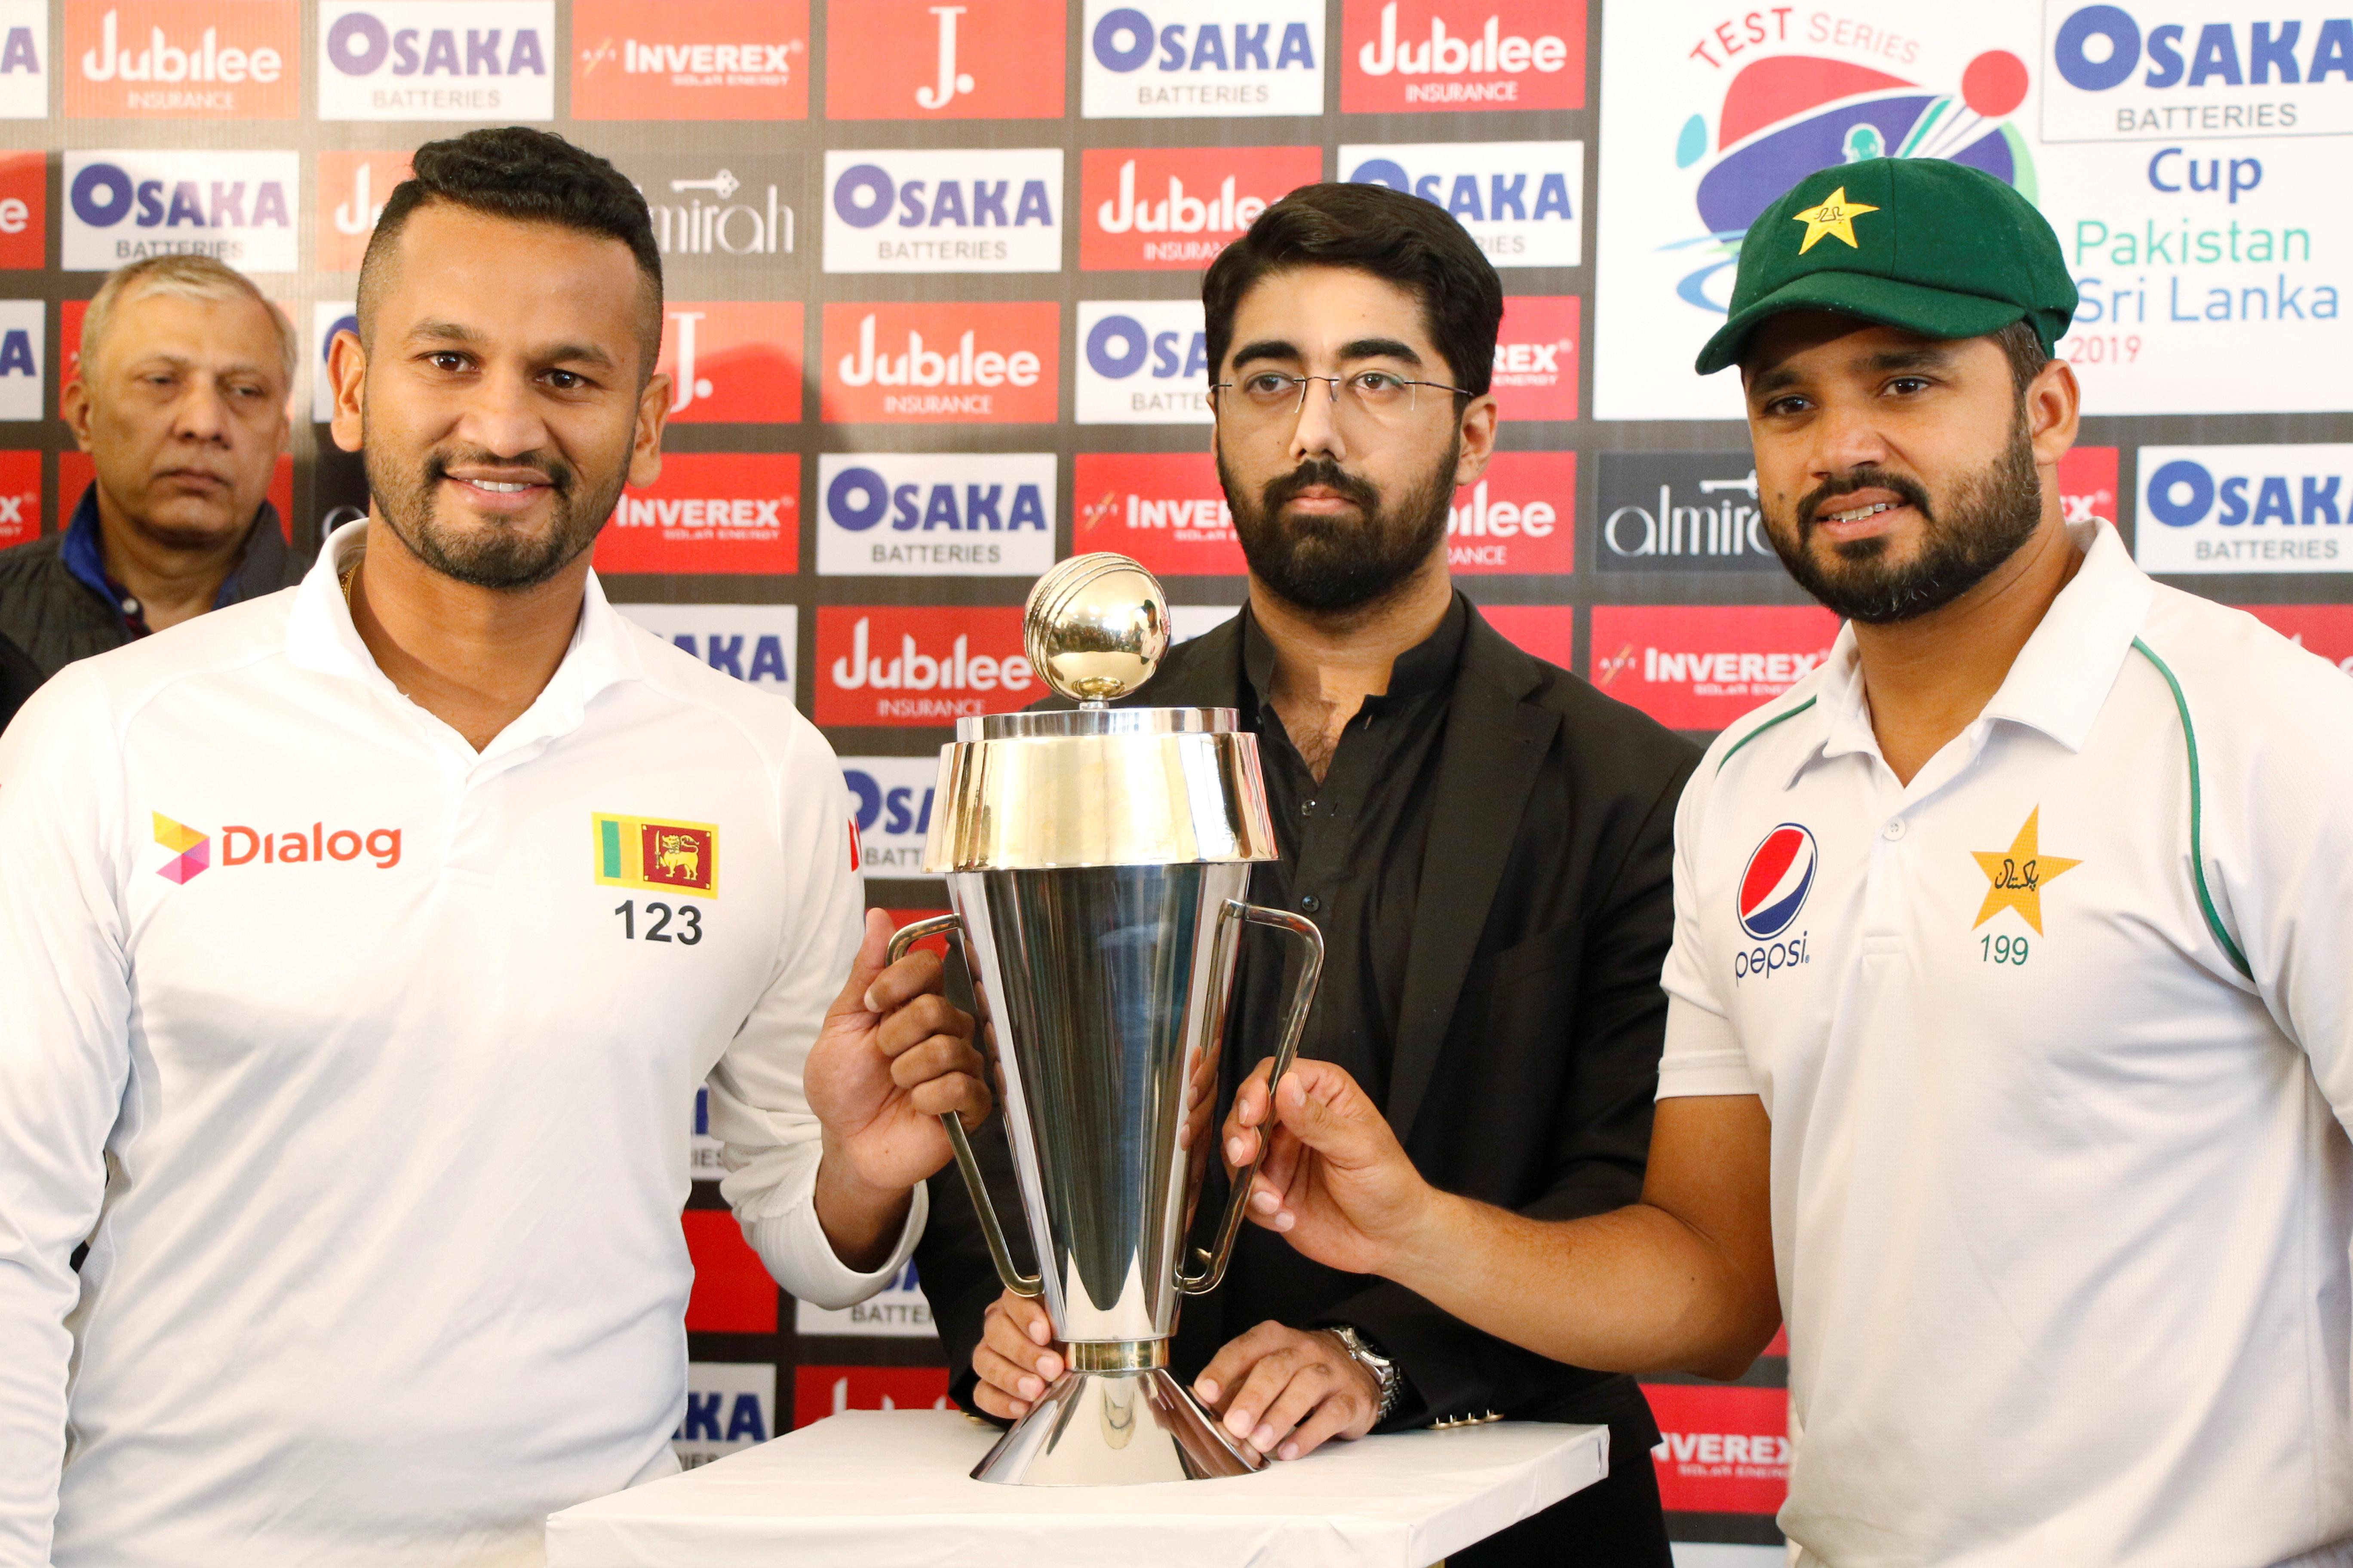 Pakistan's first home test in a decade a joyous occasion - Azhar